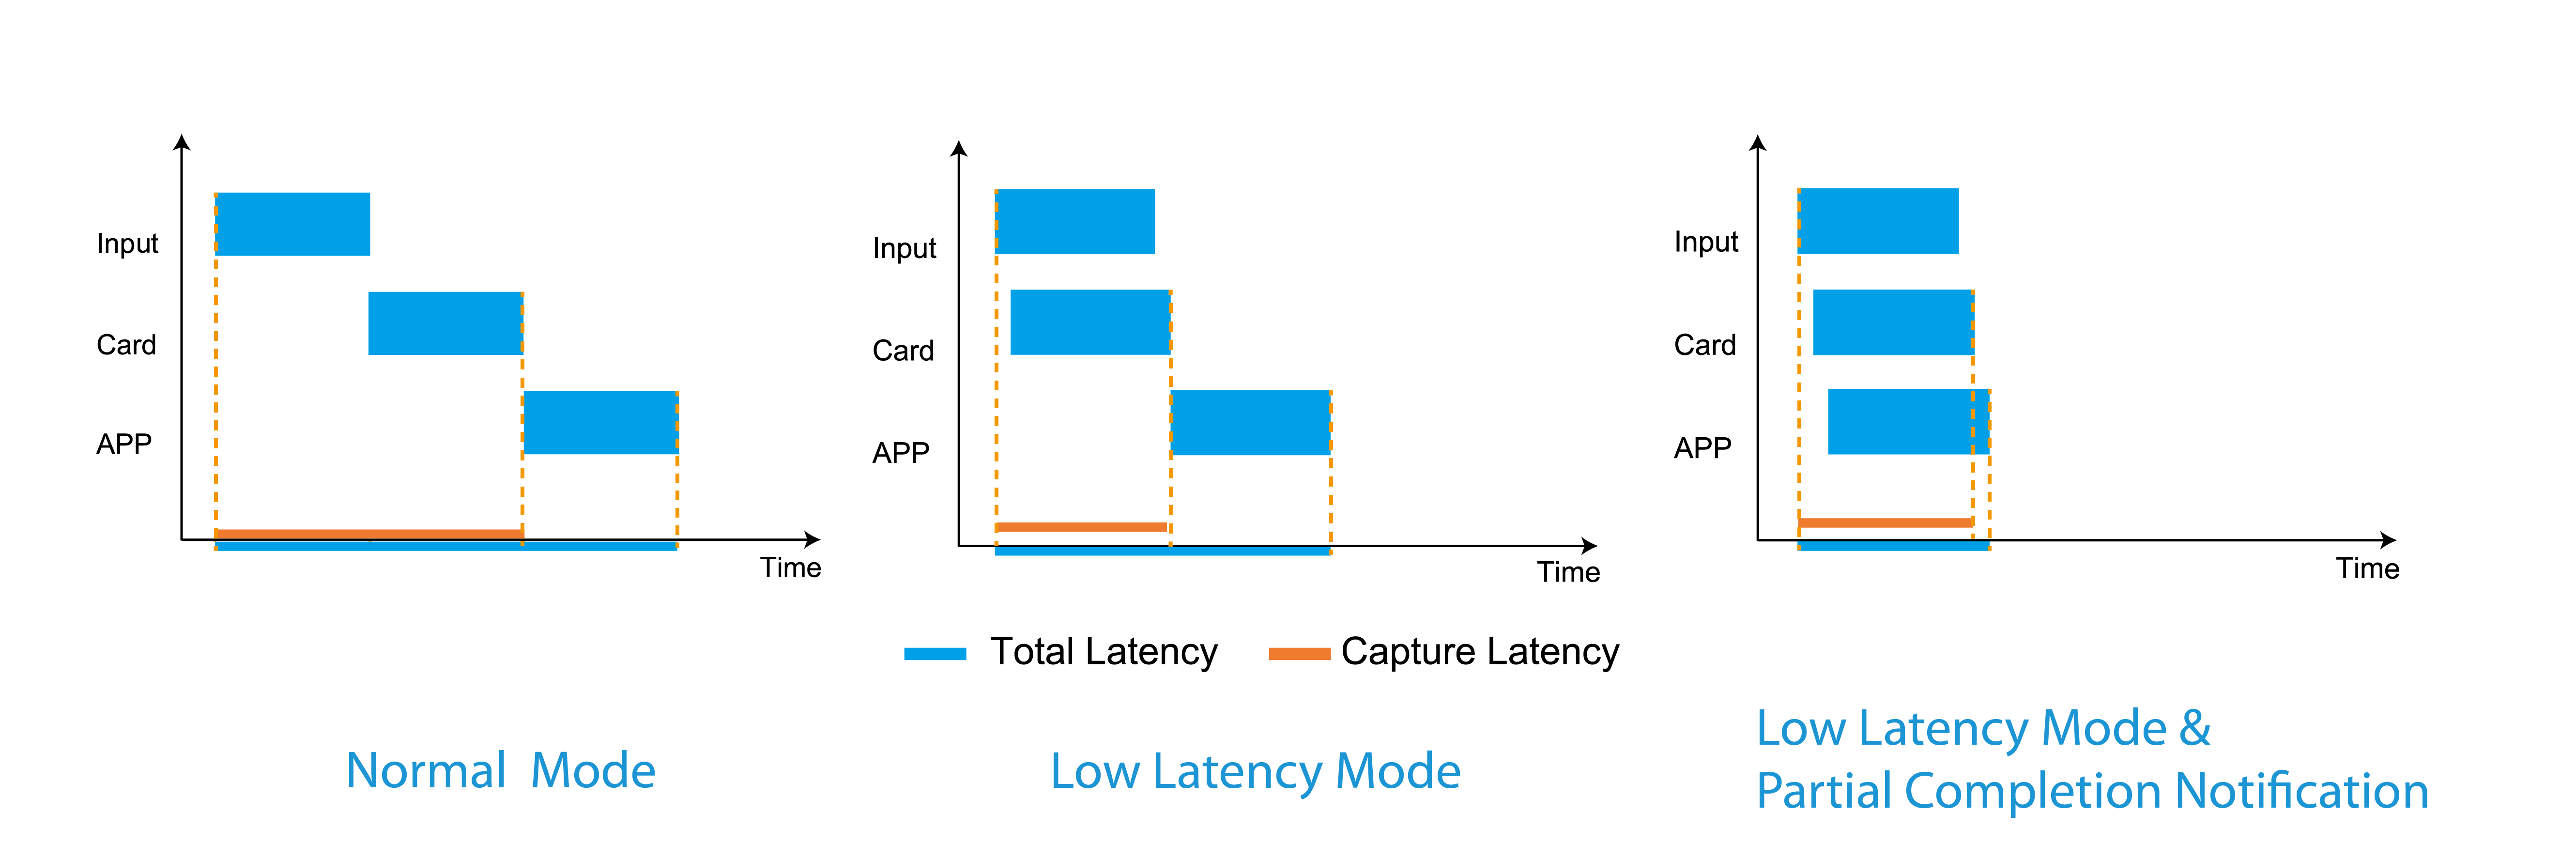 Delay in different modes